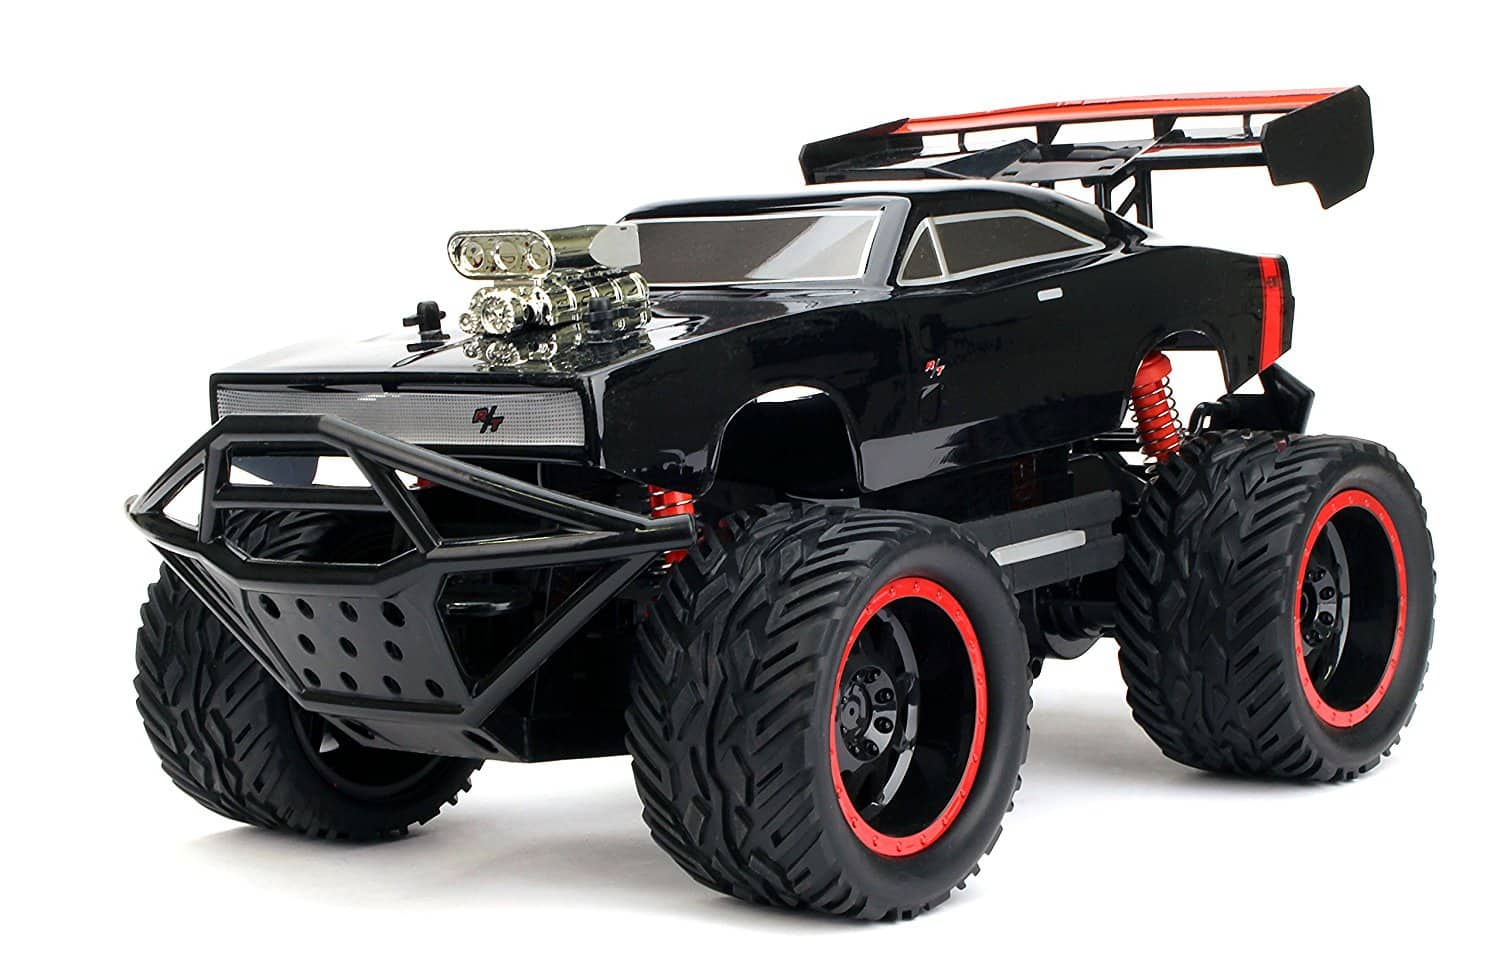 fast and furious elite off road 1 12 rc car vehicle amazon walmart 30. Black Bedroom Furniture Sets. Home Design Ideas